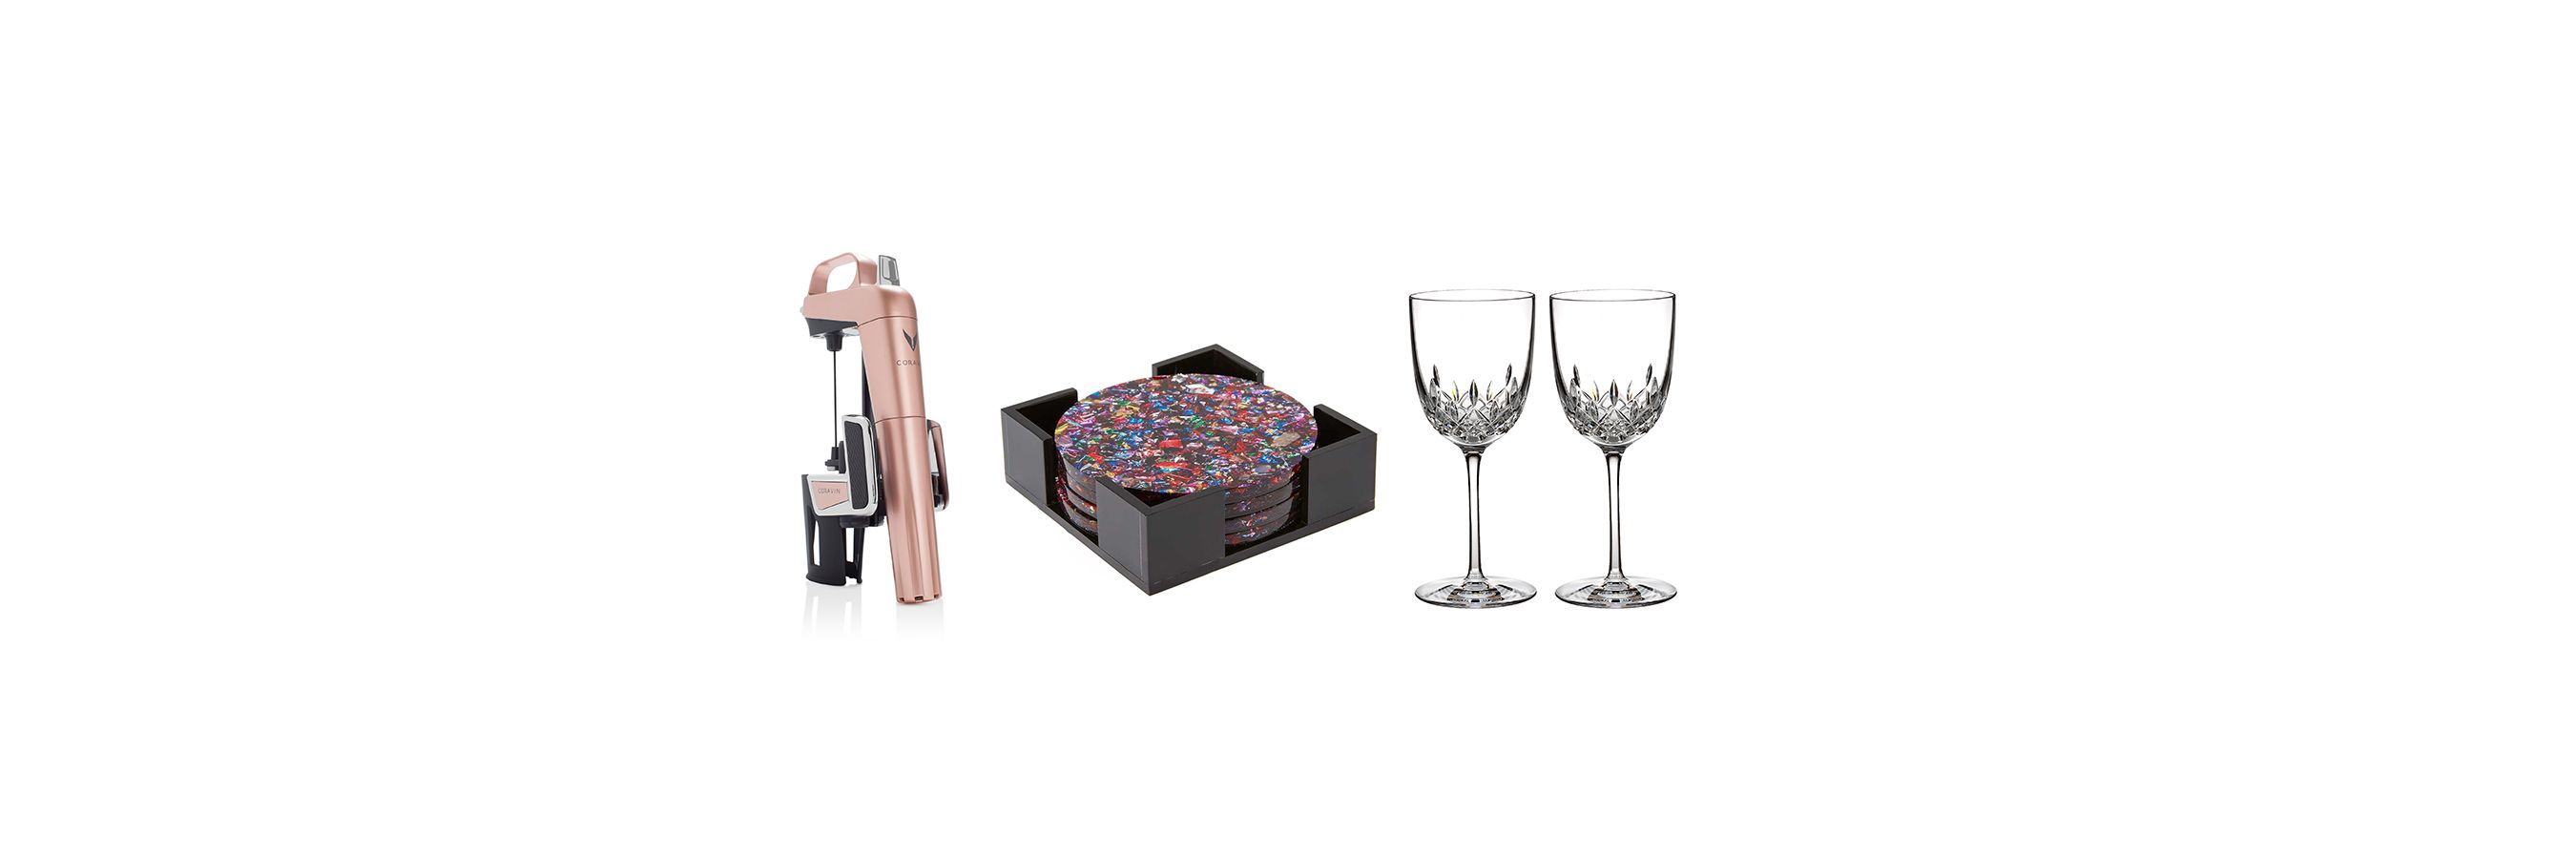 159 & 20+ Wine Gifts for Her - Unique Gift Ideas for Wine Lovers